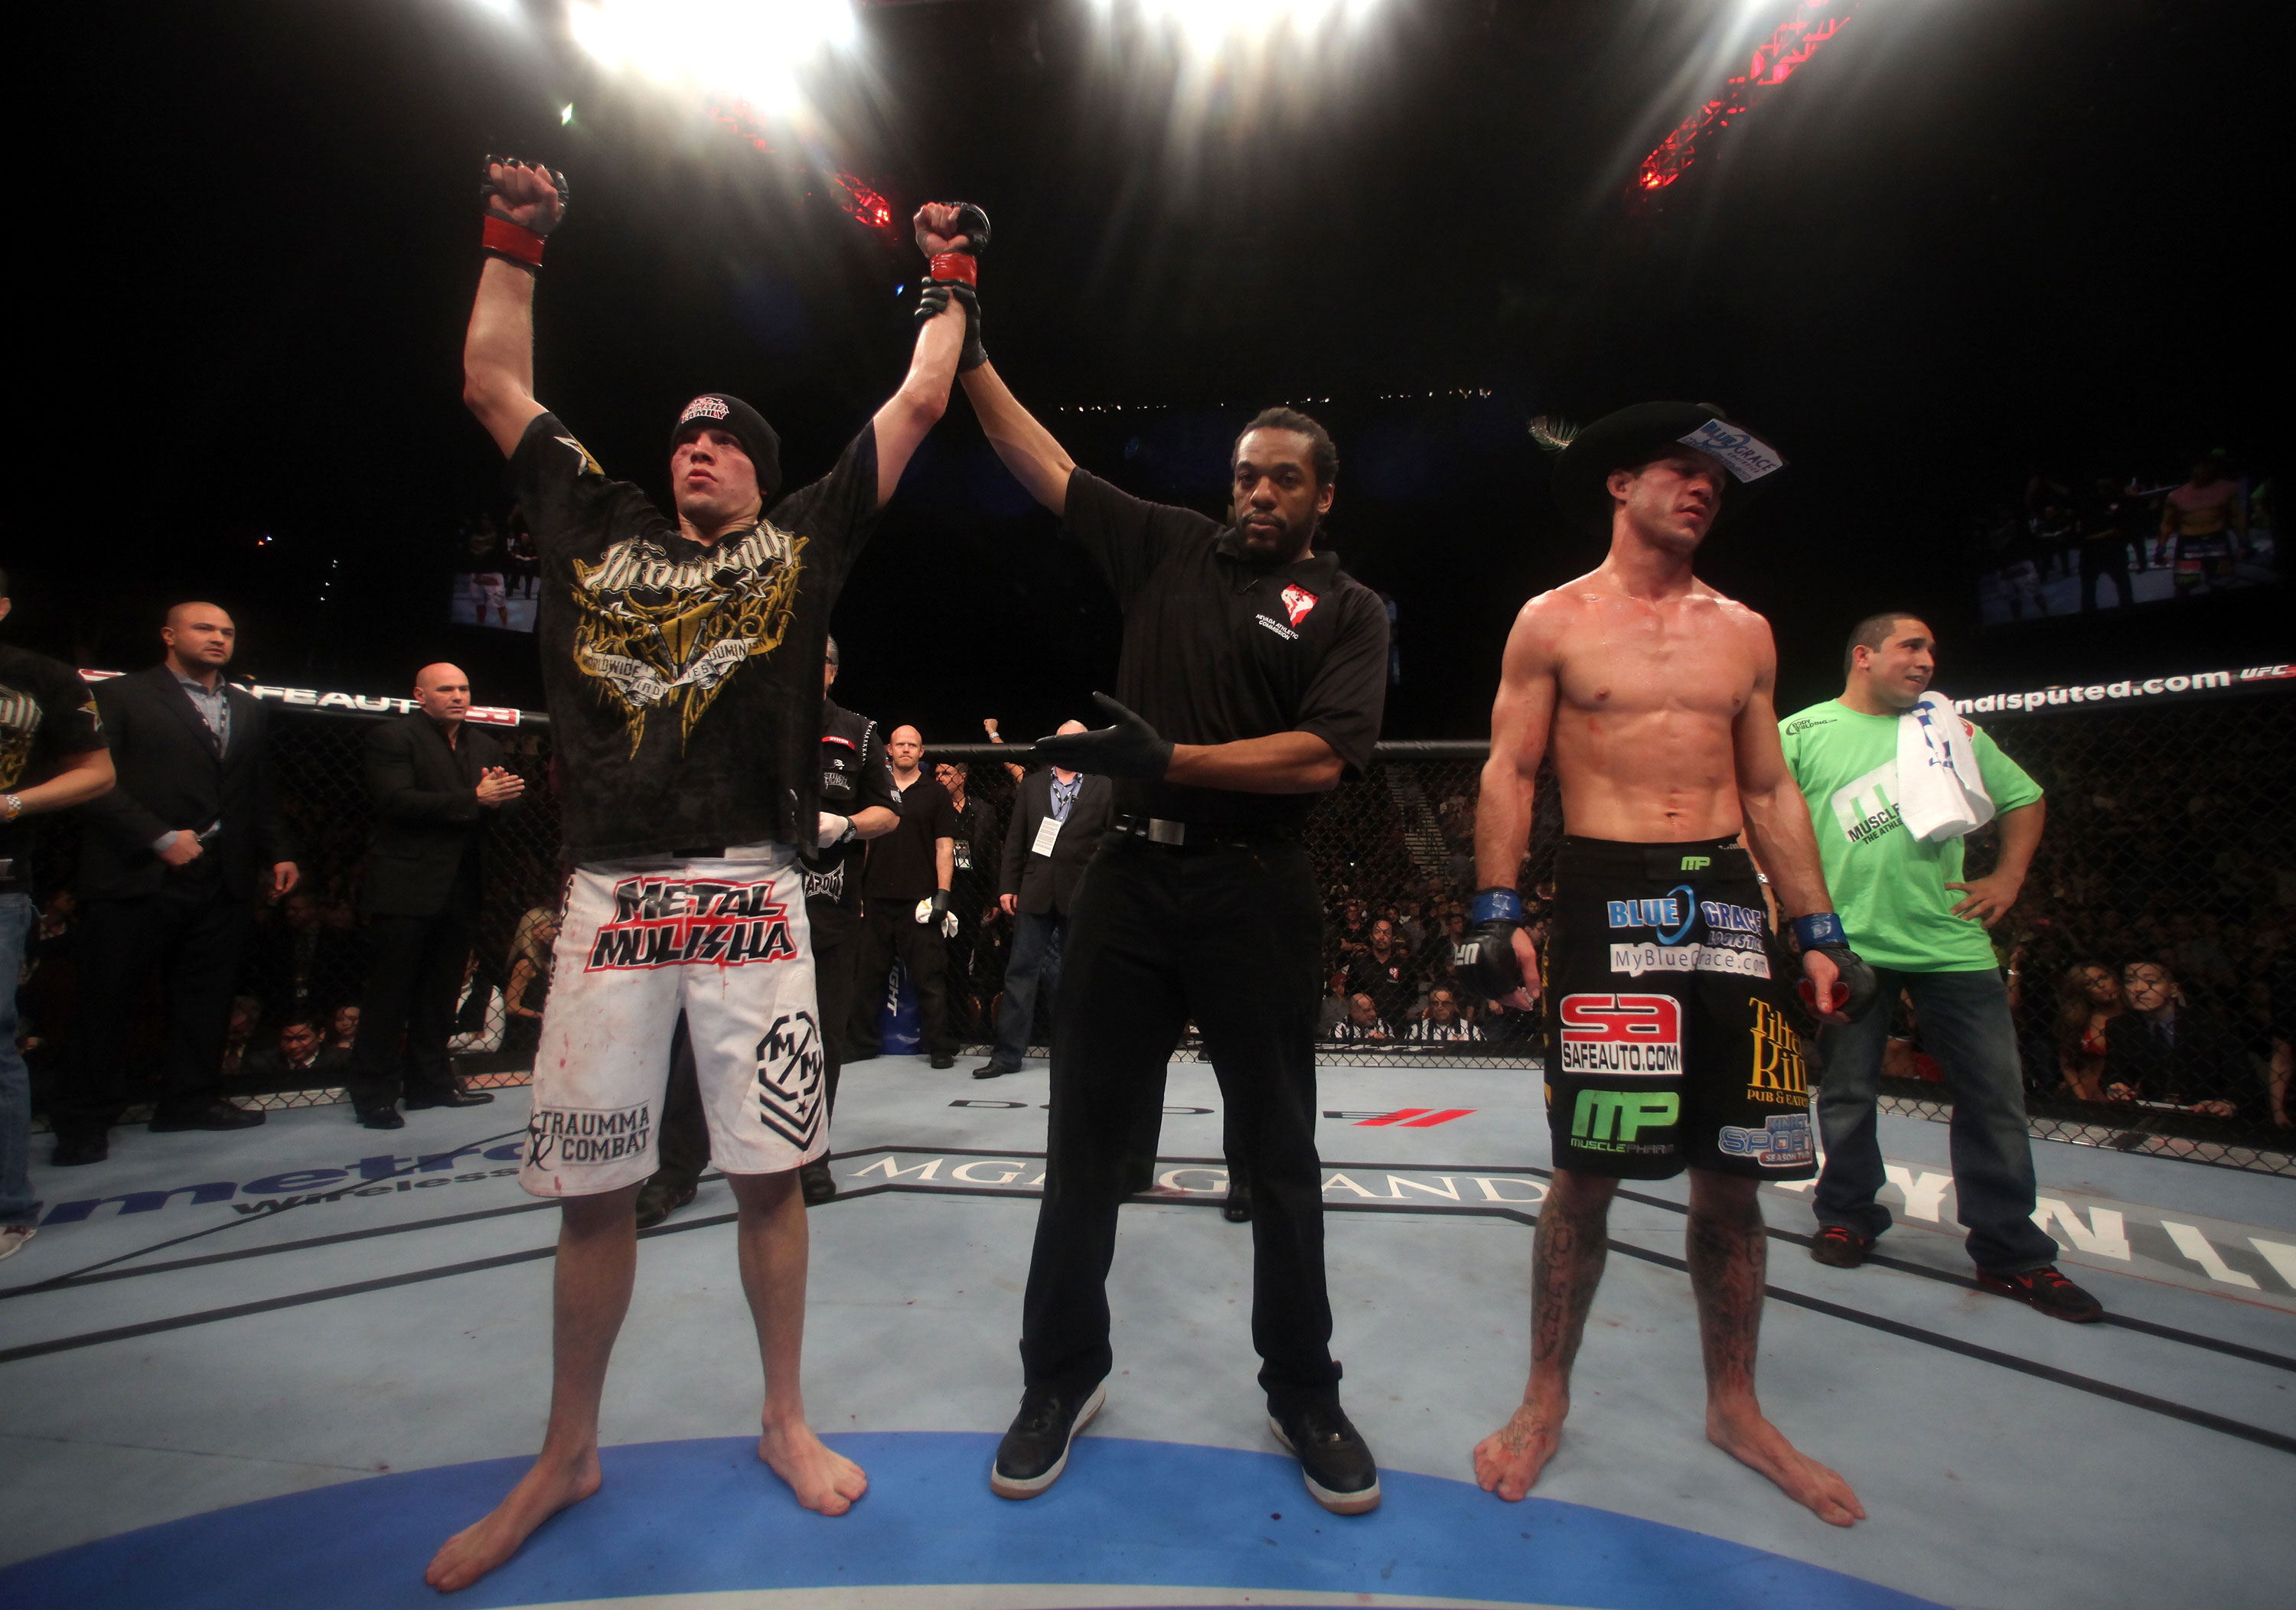 LAS VEGAS, NV - DECEMBER 30:  Nate Diaz (left) is declared the winner in his fight with Donald Cerrone (black shorts) during the UFC 141 event at the MGM Grand Garden Arena on December 30, 2011 in Las Vegas, Nevada.  (Photo by Donald Miralle/Zuffa LLC/Zuffa LLC via Getty Images) *** Local Caption *** Nate Diaz; Donald Cerrone